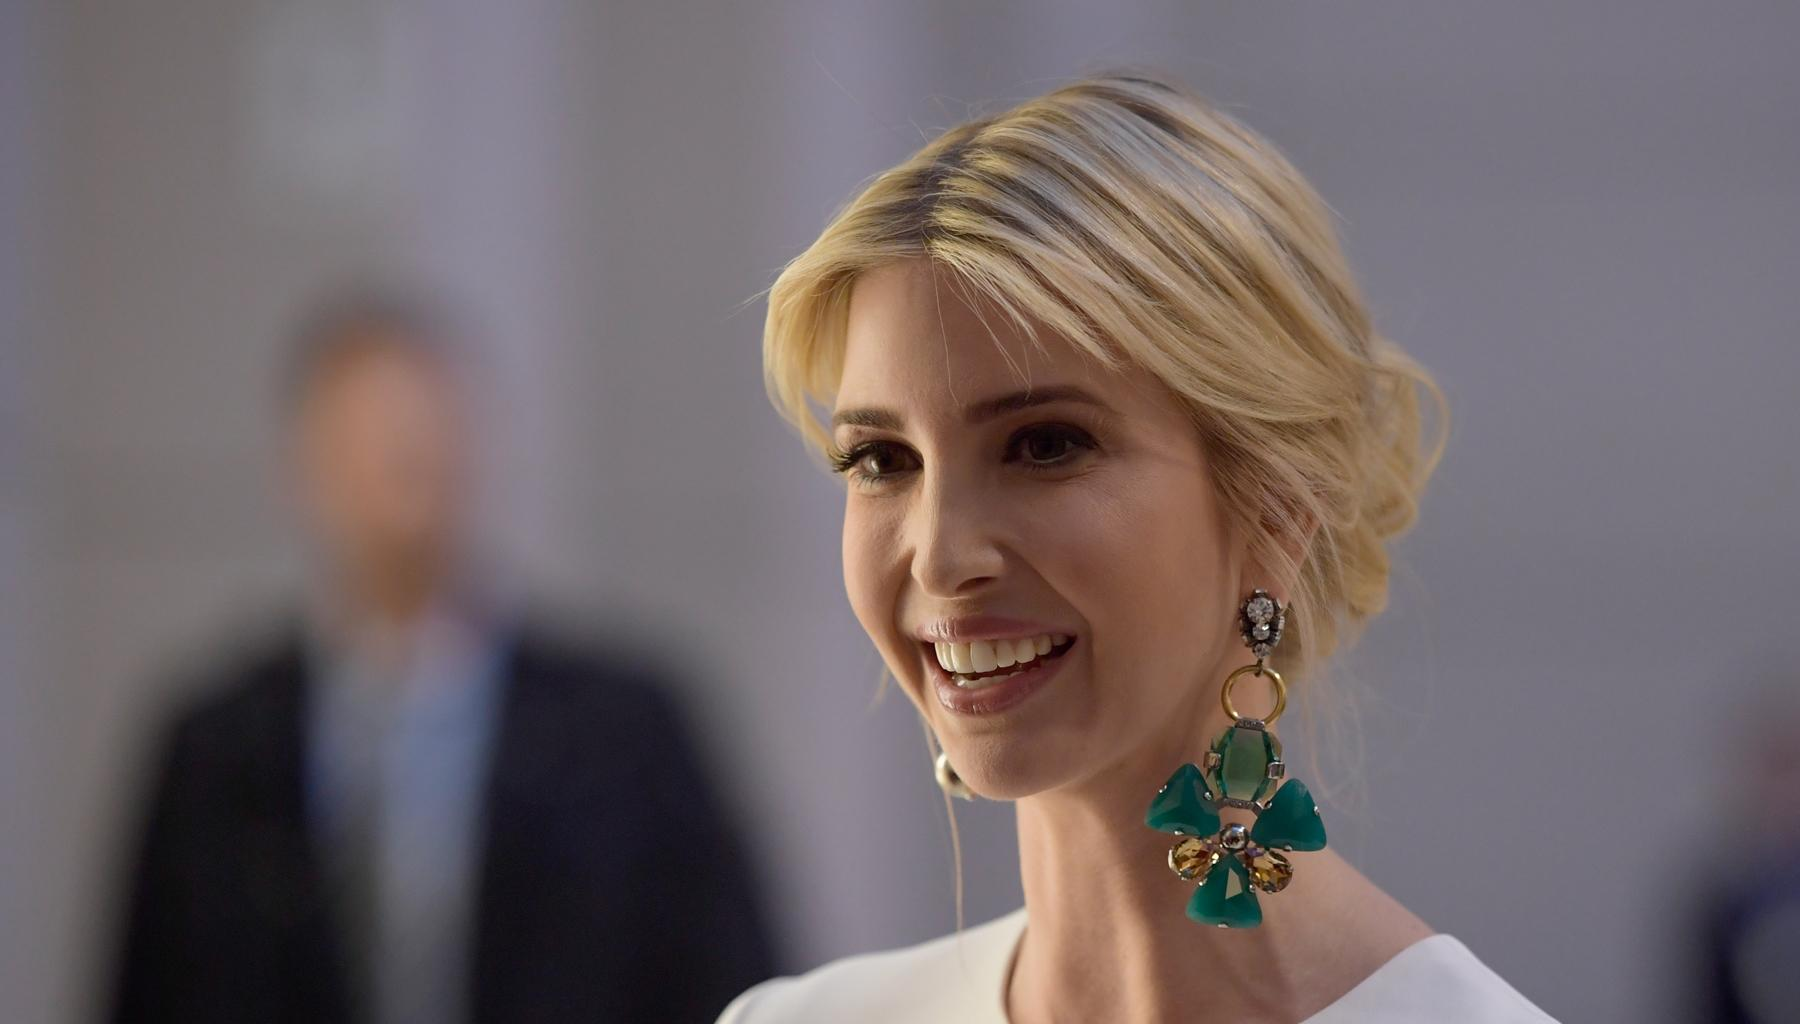 Ivanka Trump Gets Bashed For Tweeting About White Supremacy After The El Paso And Dayton Shootings